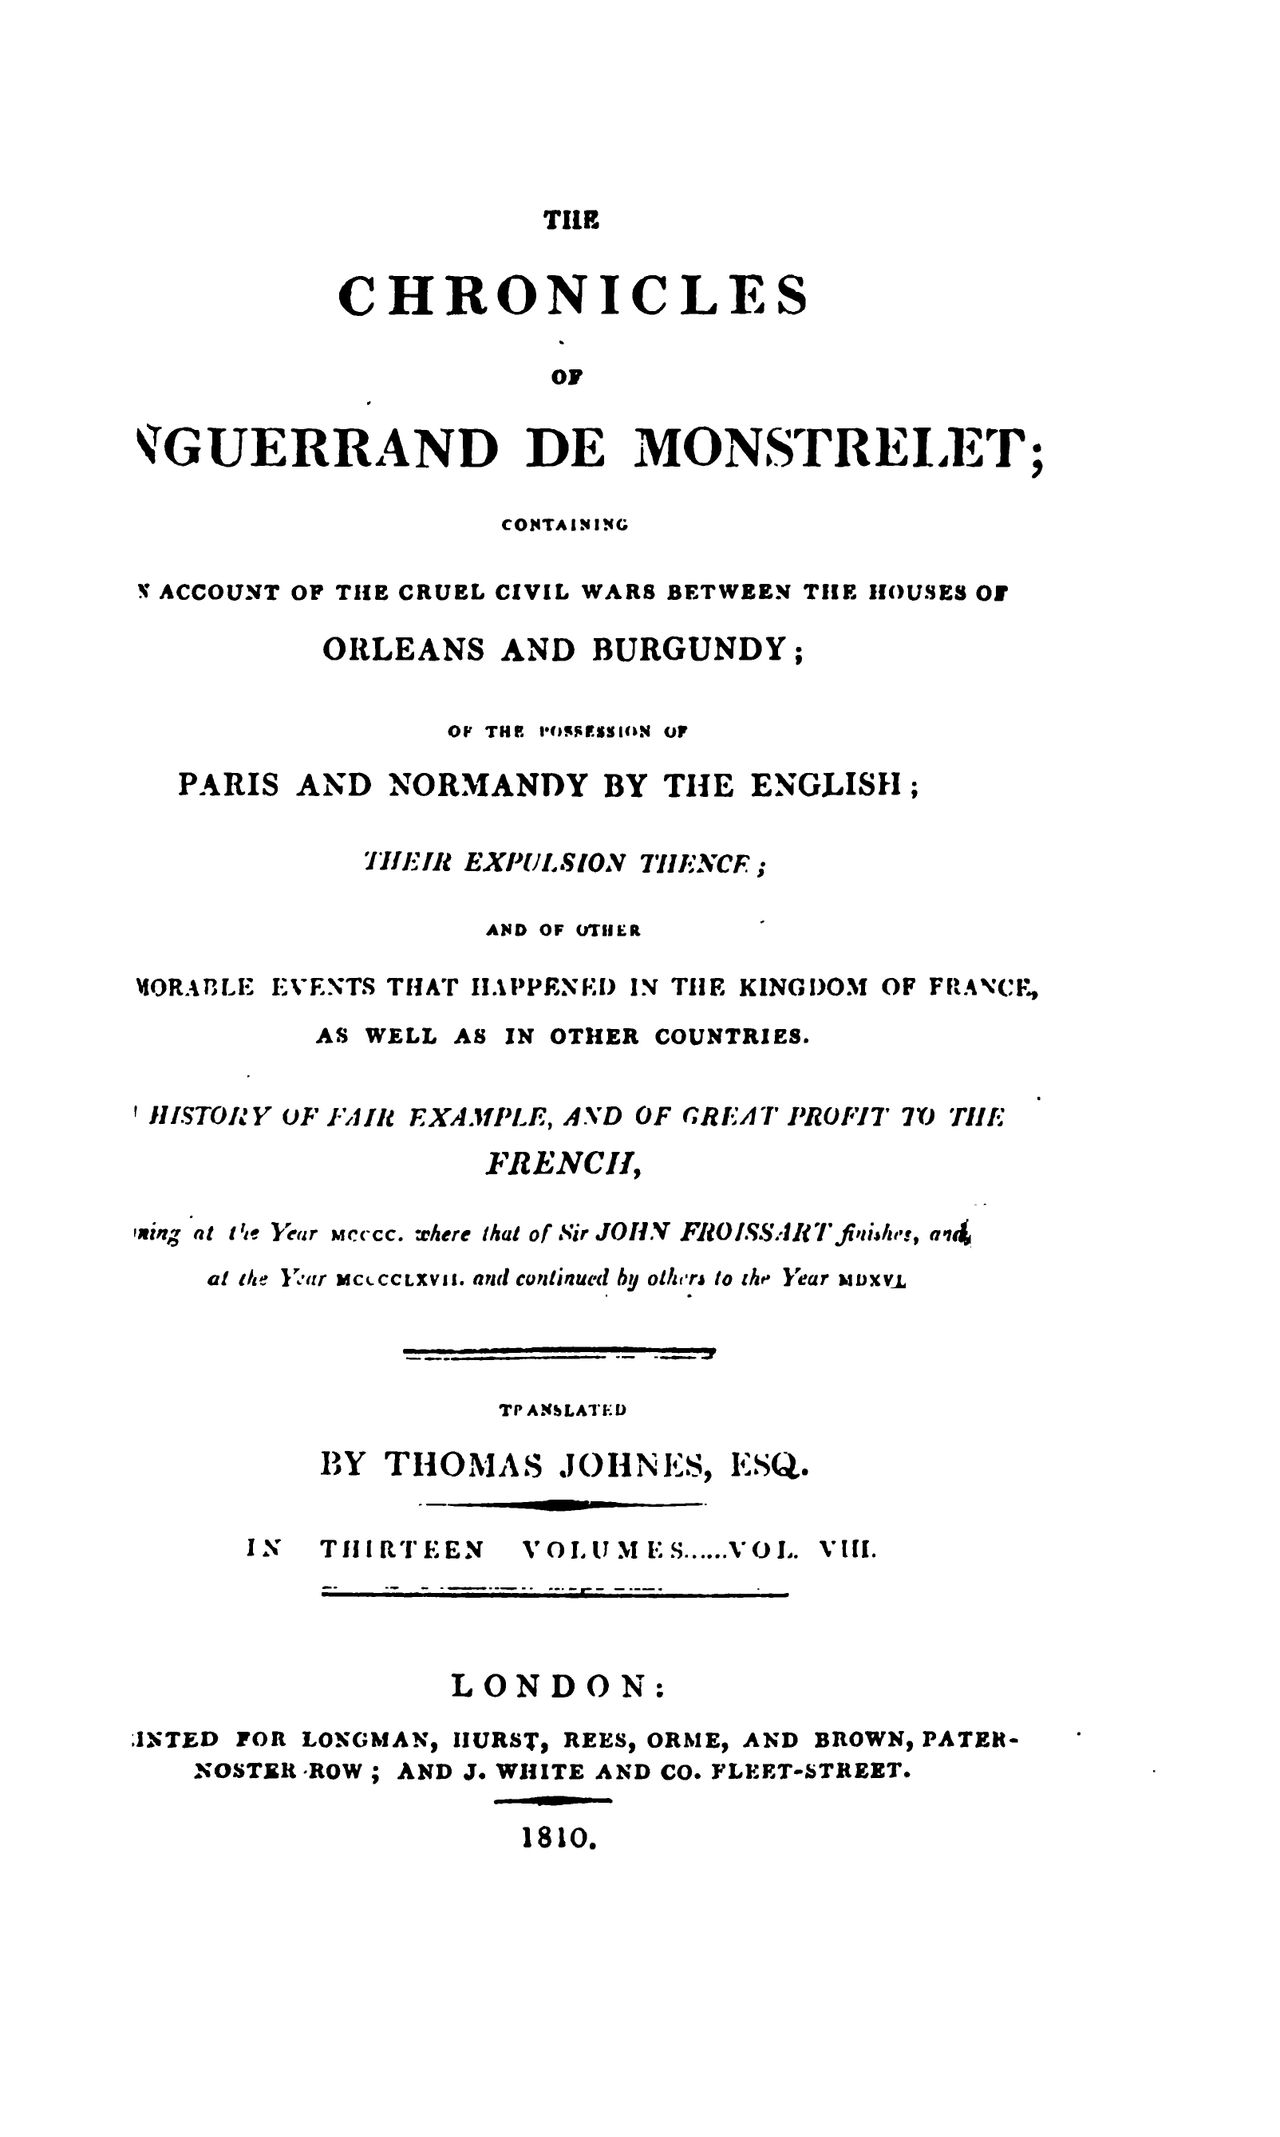 Enguerrand de Monstrelet chronicle vol.8